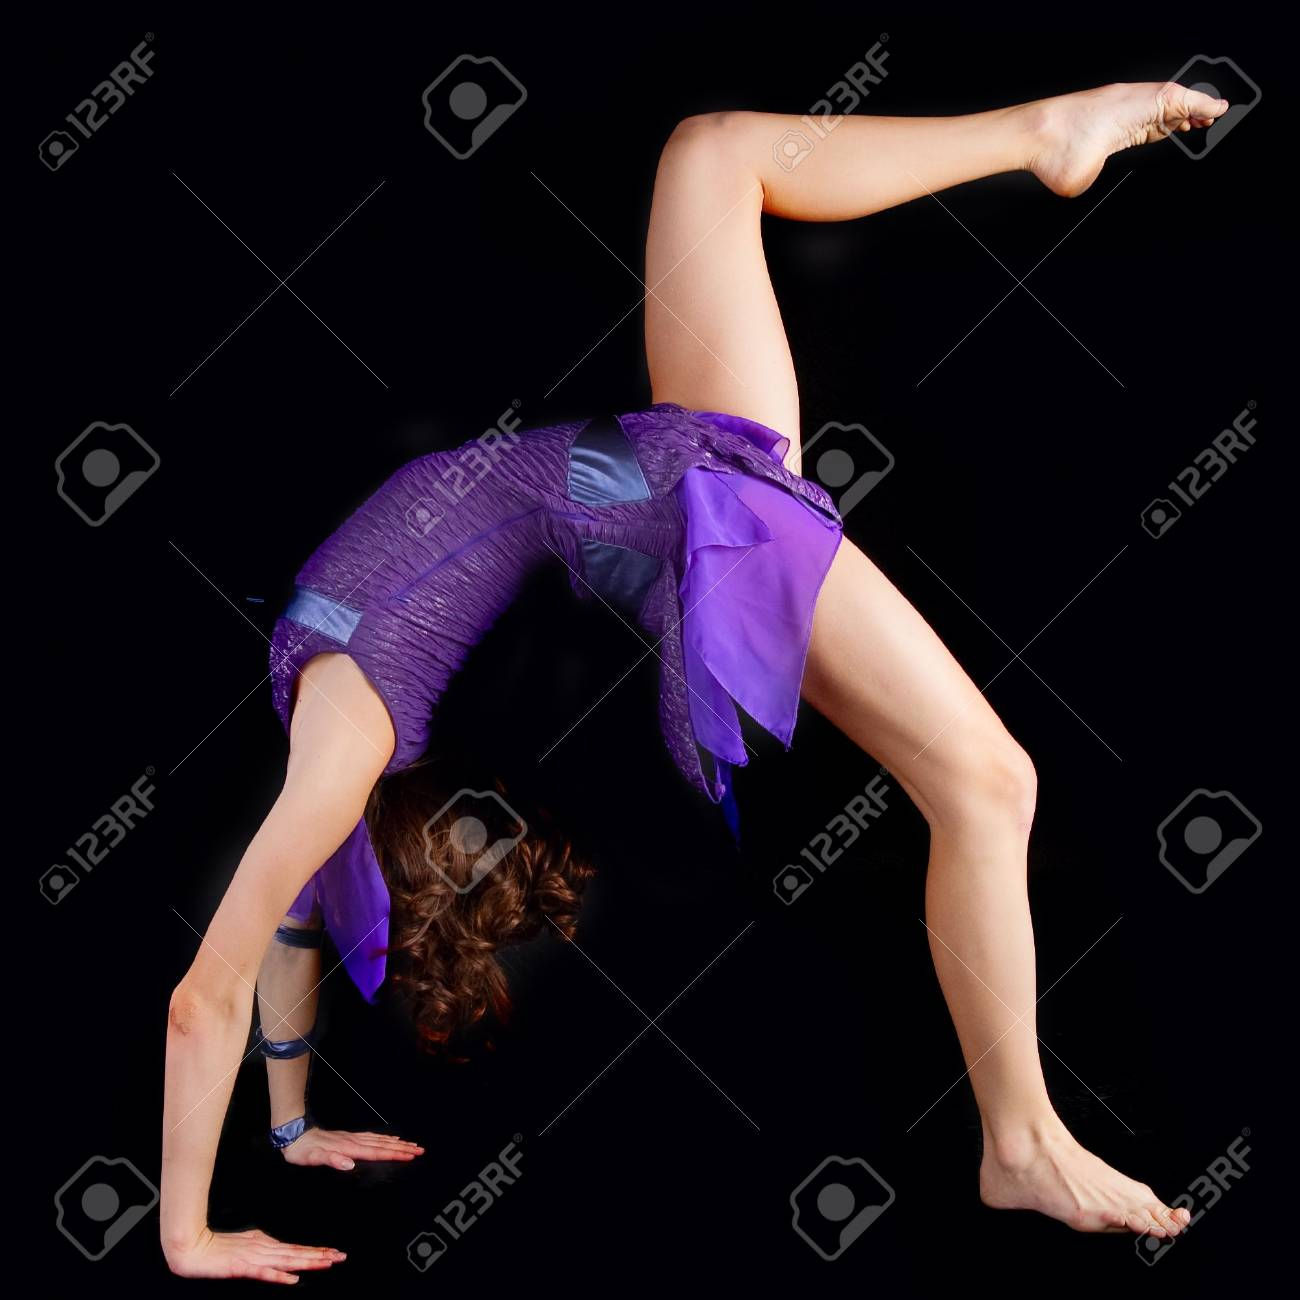 young yoga female doing yogatic exericise . Black background Stock Photo - 5865628